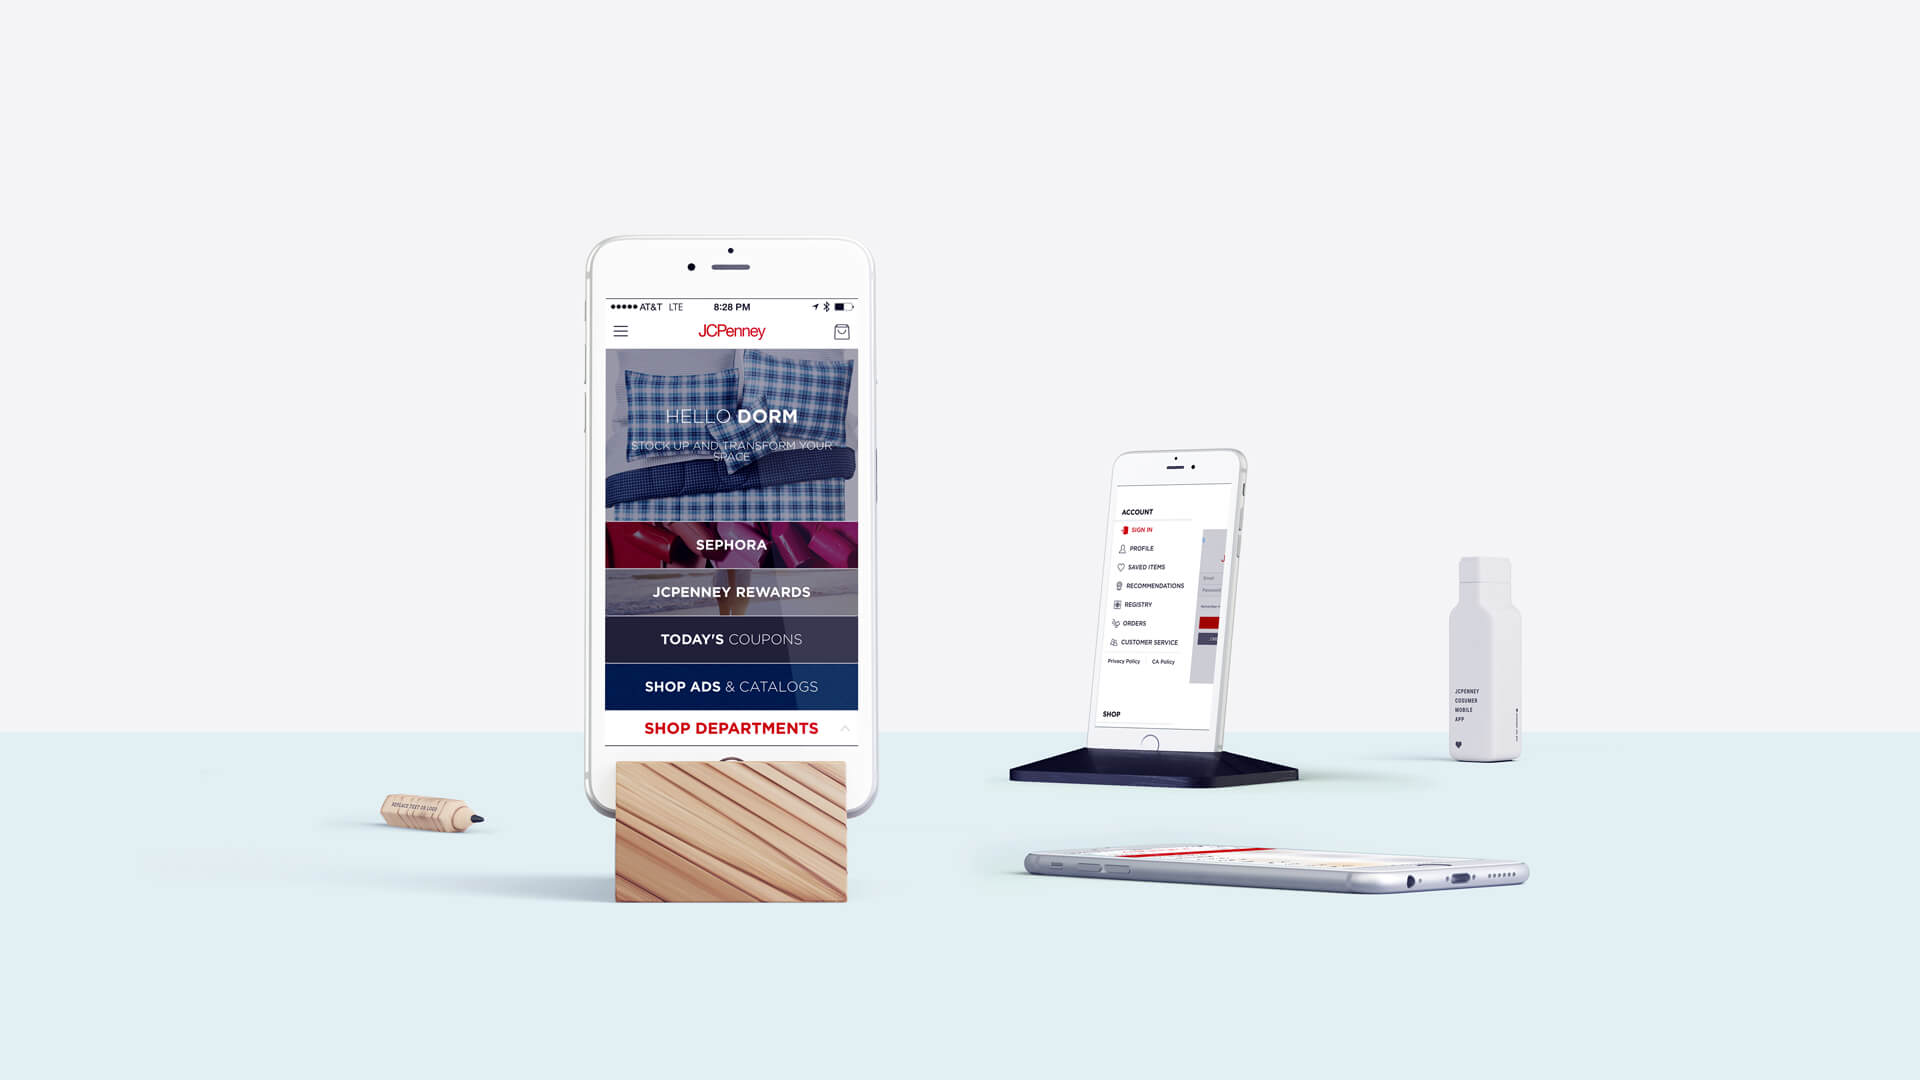 JCPenney Consumer App--The Omnichannel Strategy